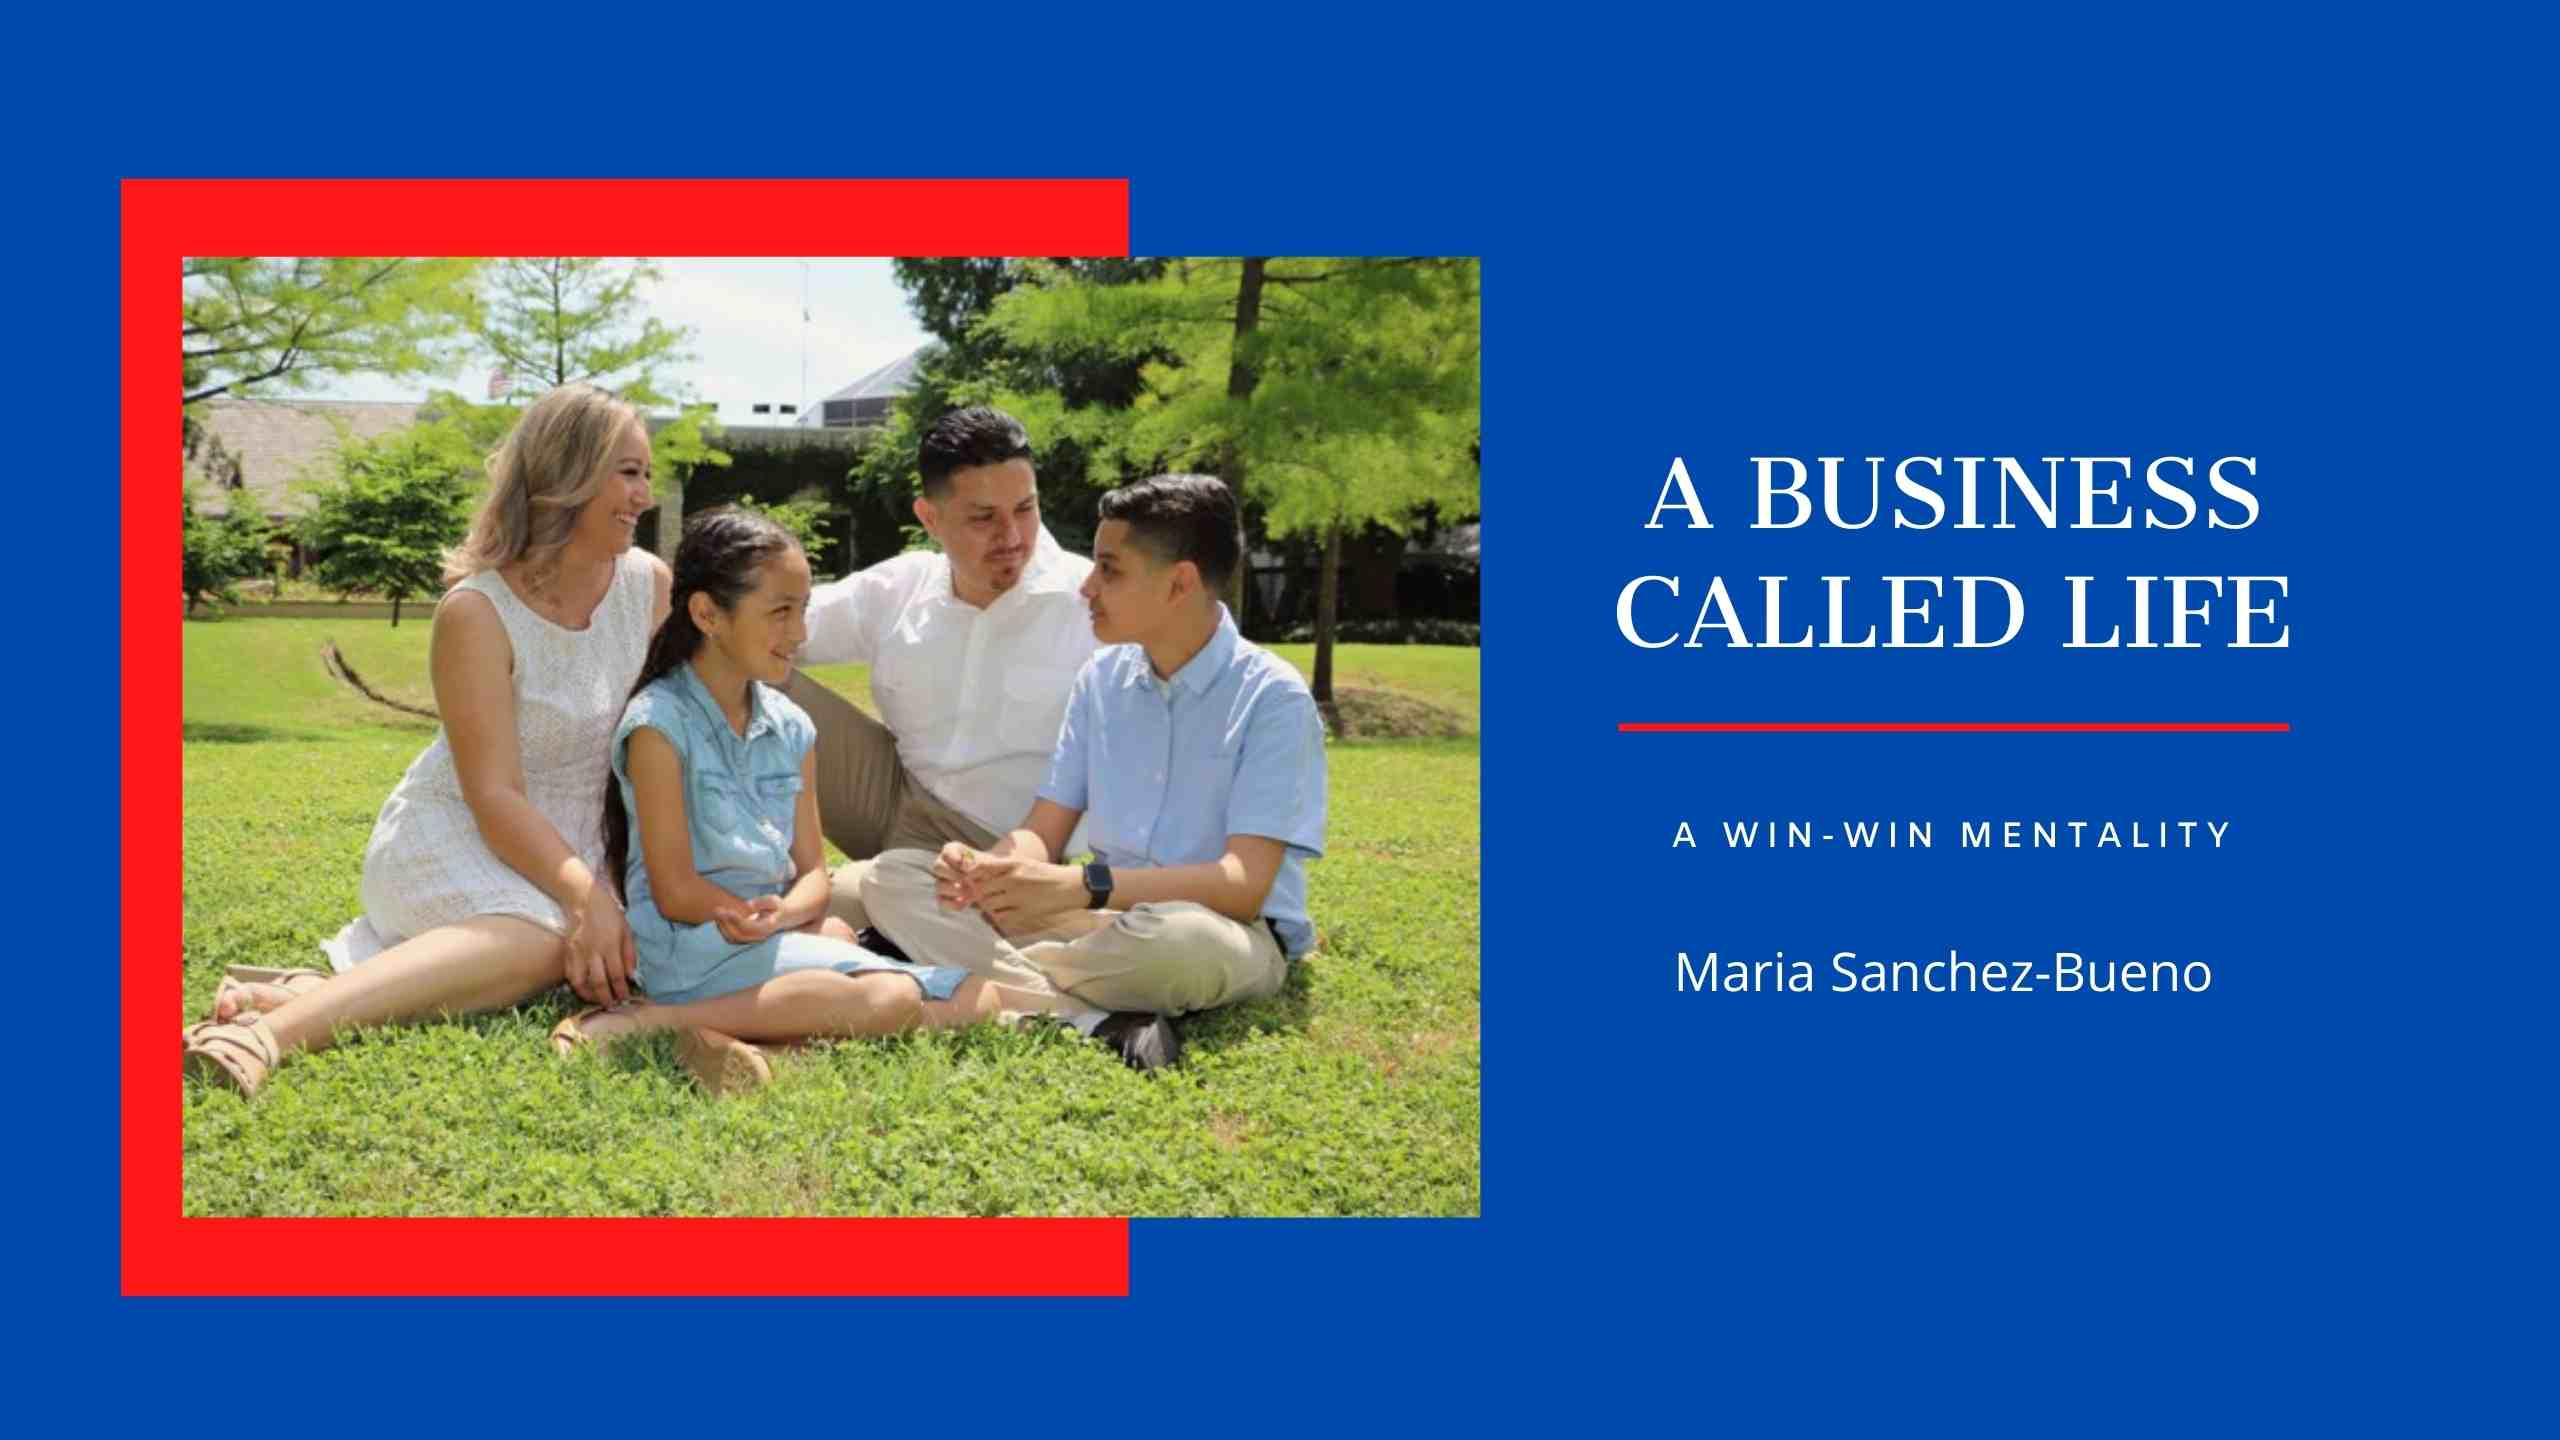 A BUSINESS CALLED LIFE